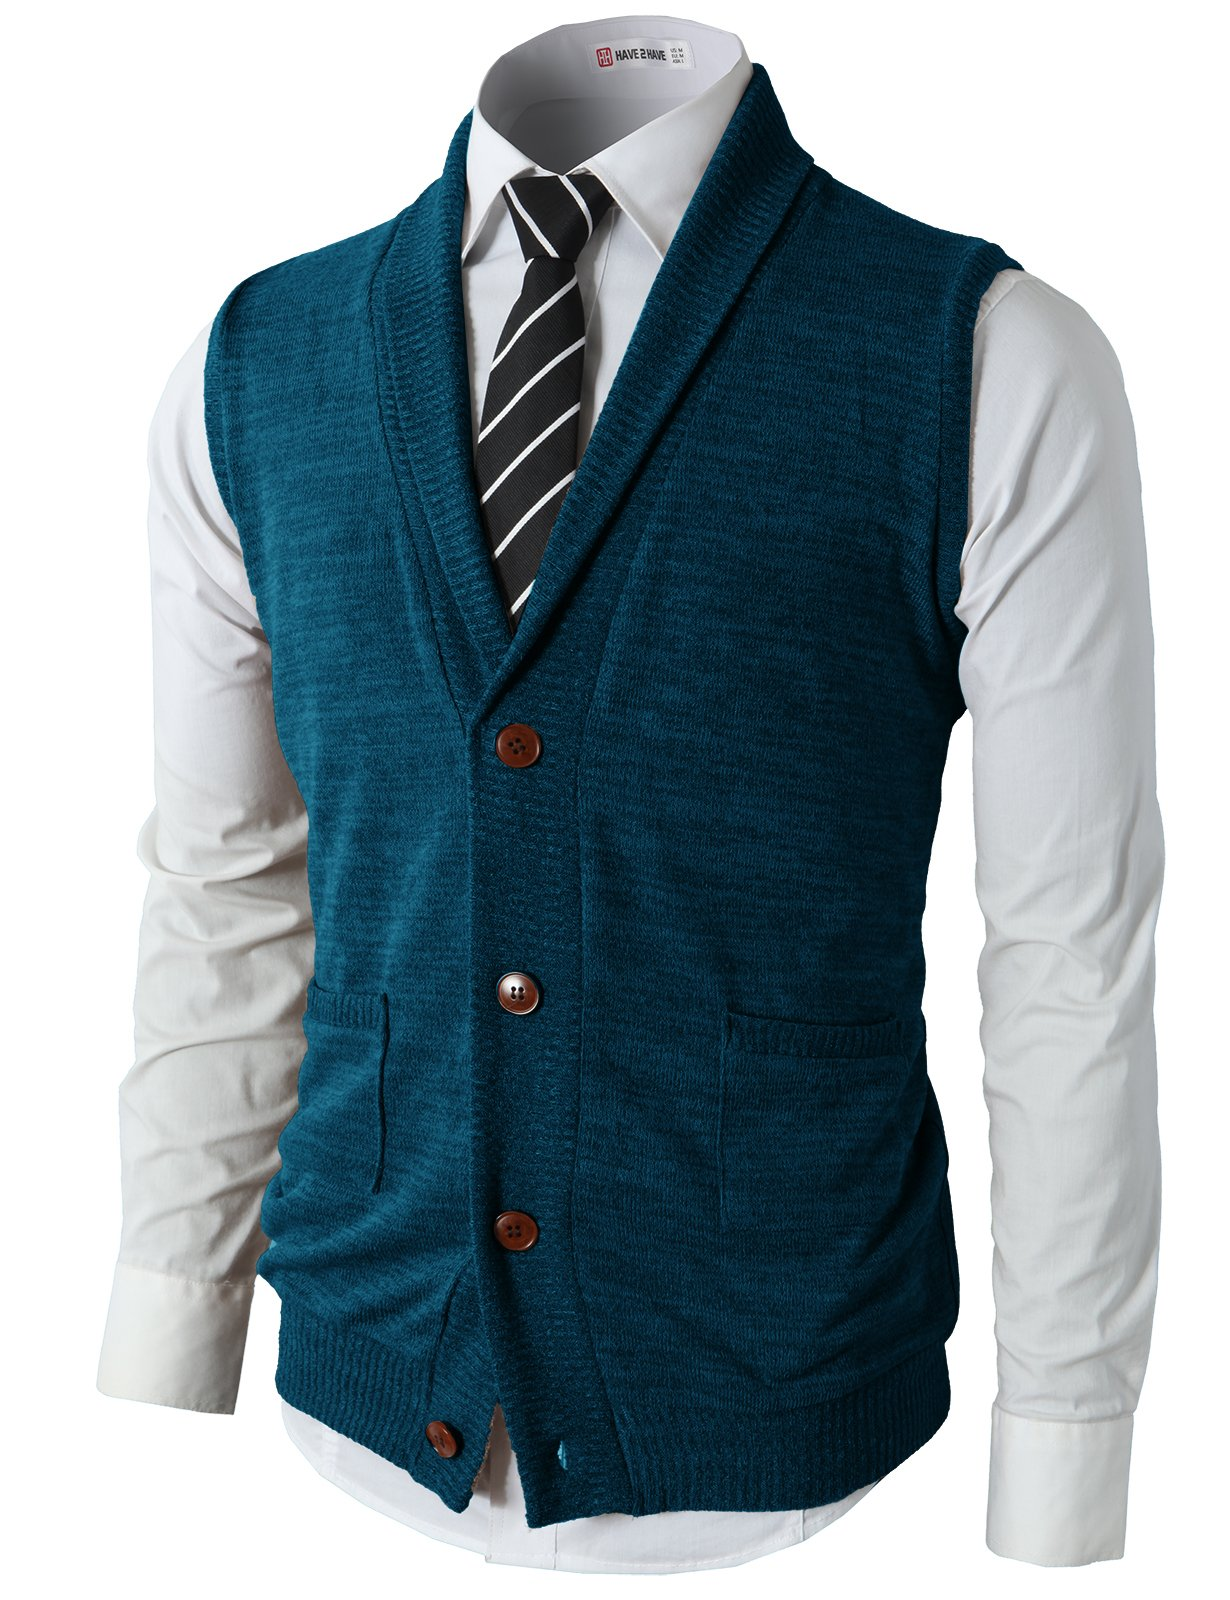 H2H Mens Casual Basic Designed Shawl Collar Knitted Slim Fit Vest Green US L/Asia XL (CMOV034)